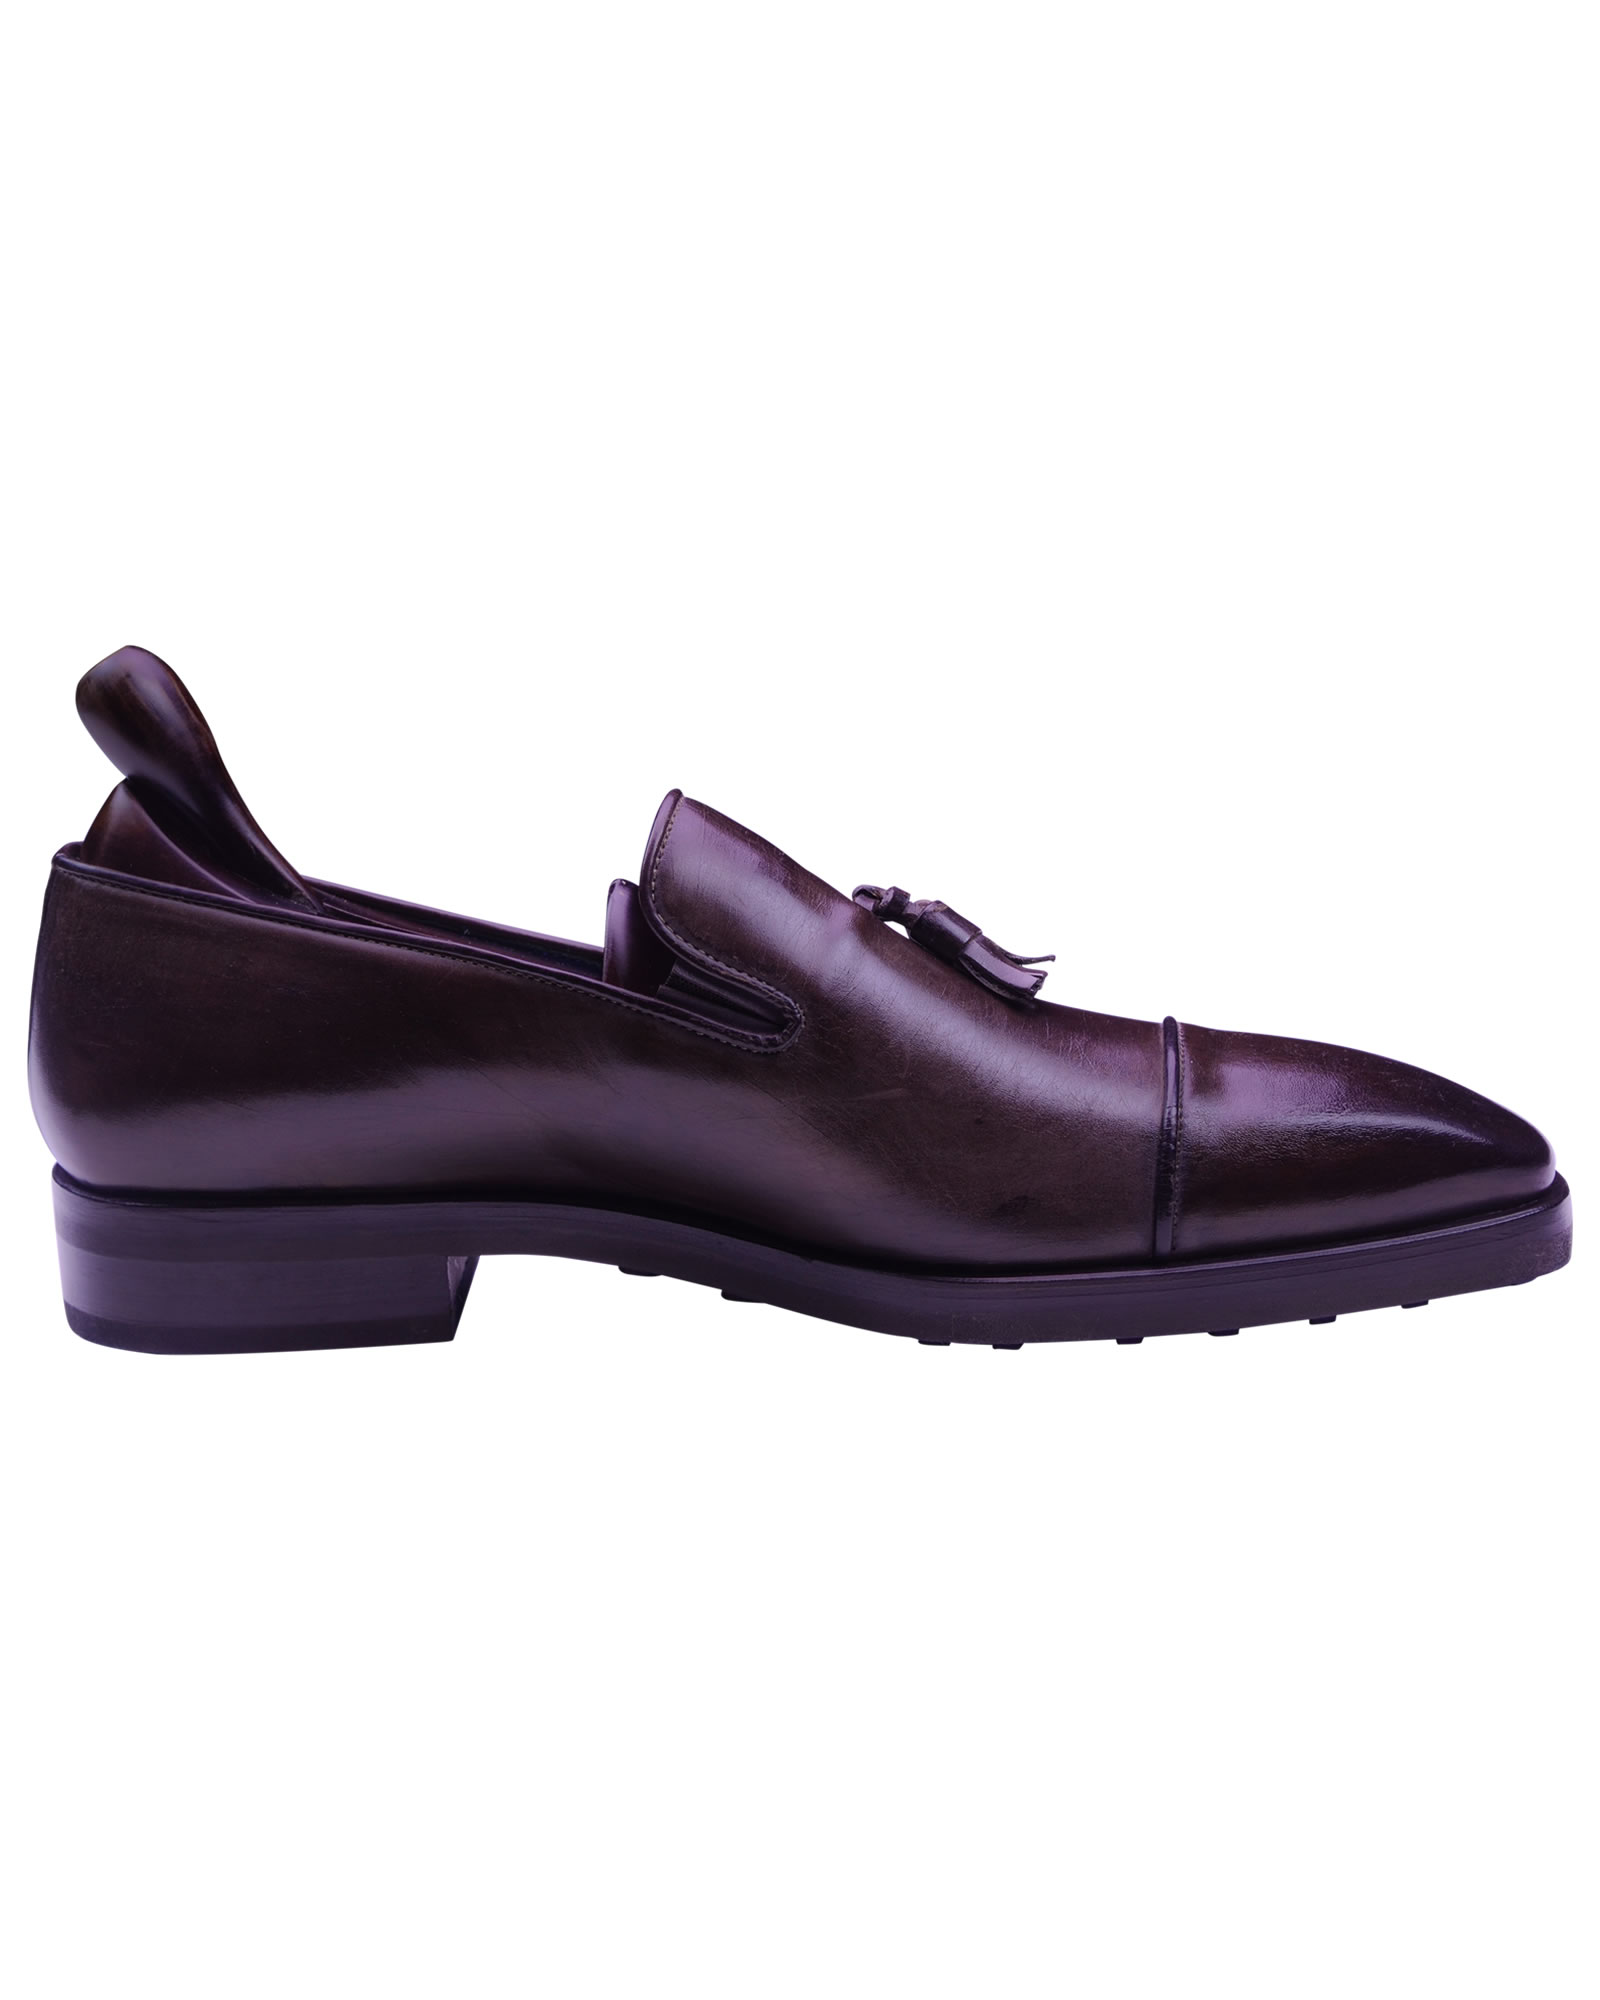 Angelo Galasso Signature Burnished Brown Loafer shoes